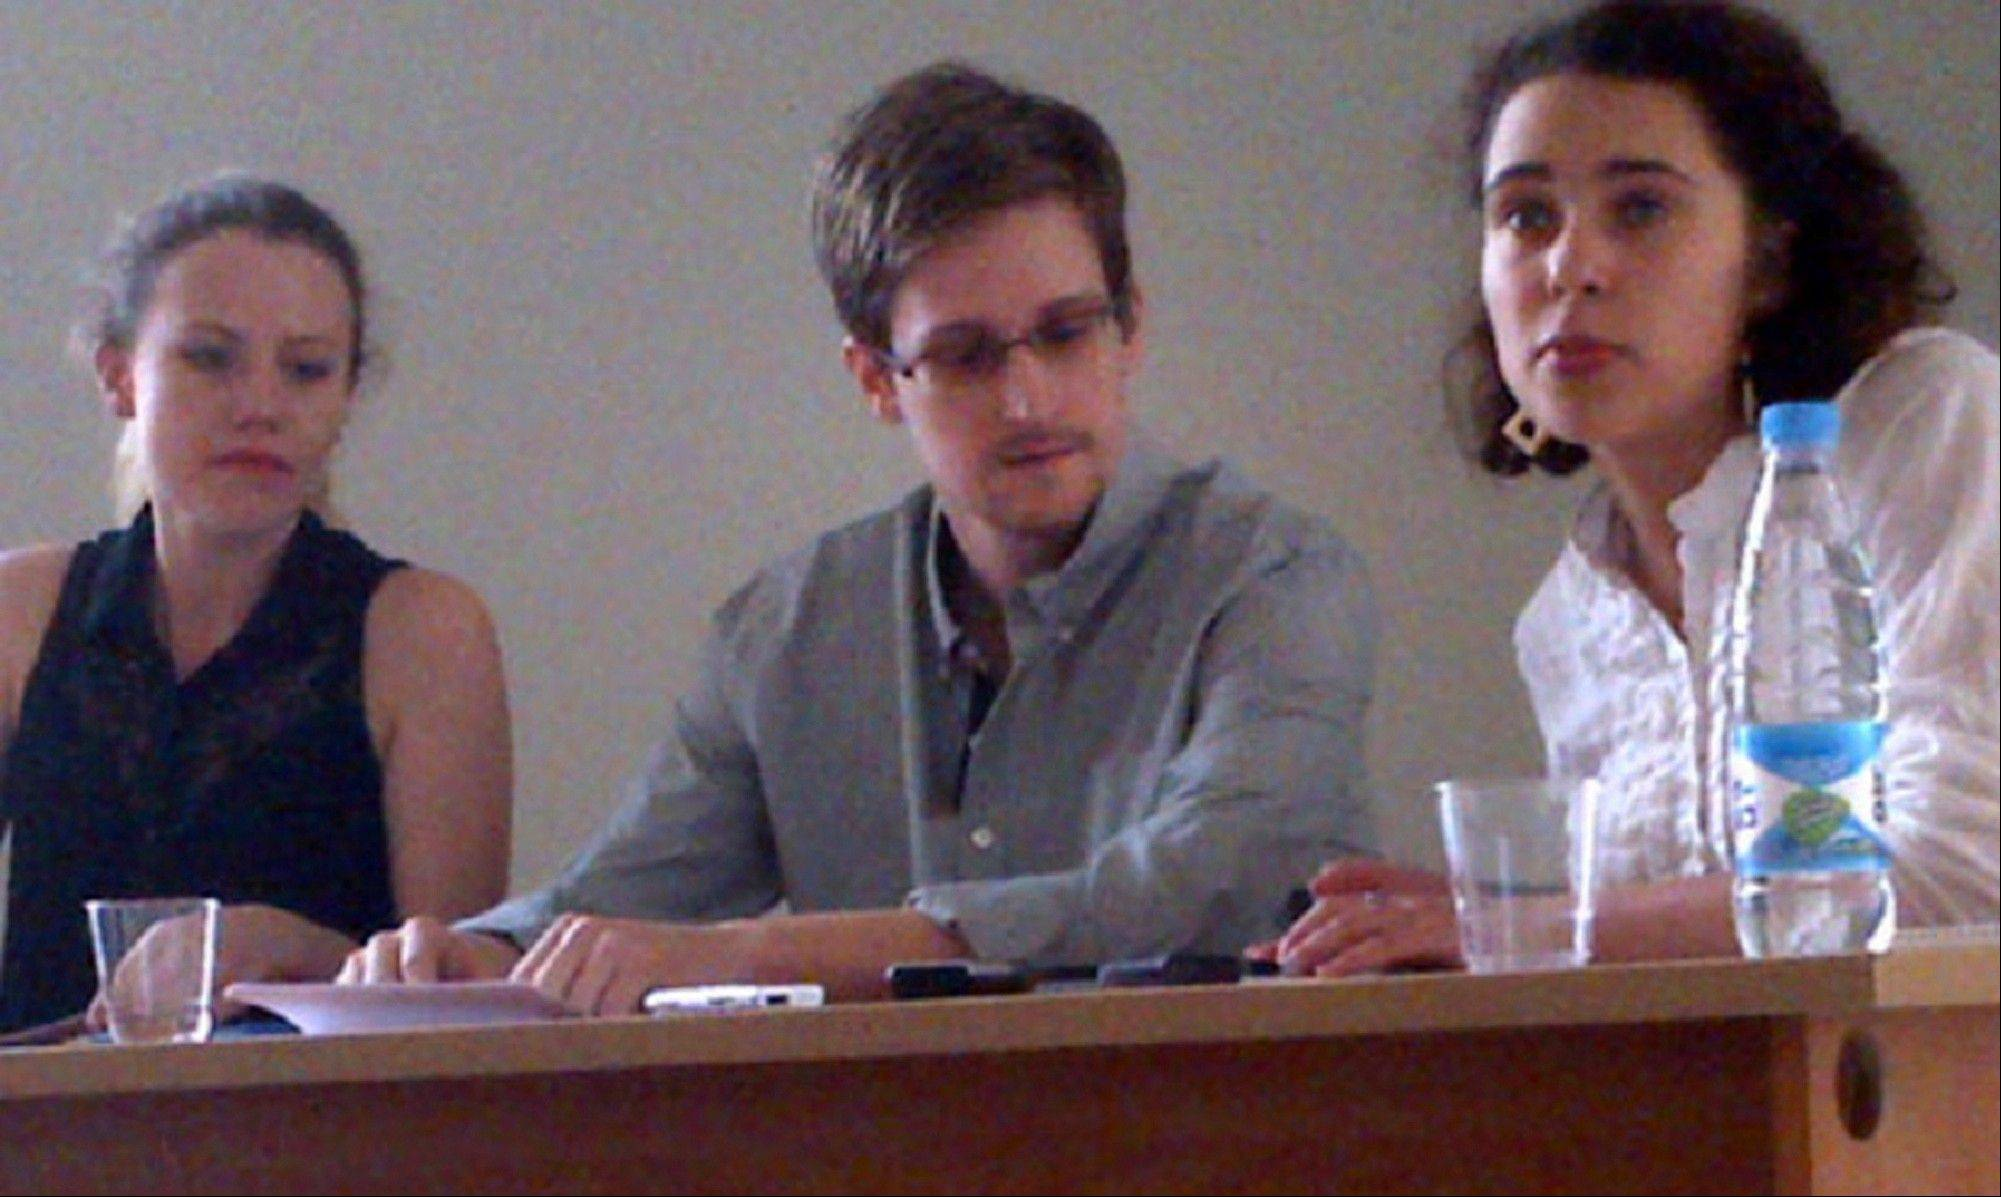 NSA leaker, Edward Snowden, center, attending a press conference Friday at Moscow's Sheremetyevo Airport with Sarah Harrison of WikiLeaks, left. Snowden wants to seek asylum in Russia, according to a Parliament member who was among about a dozen activists and officials to meet with him Friday.